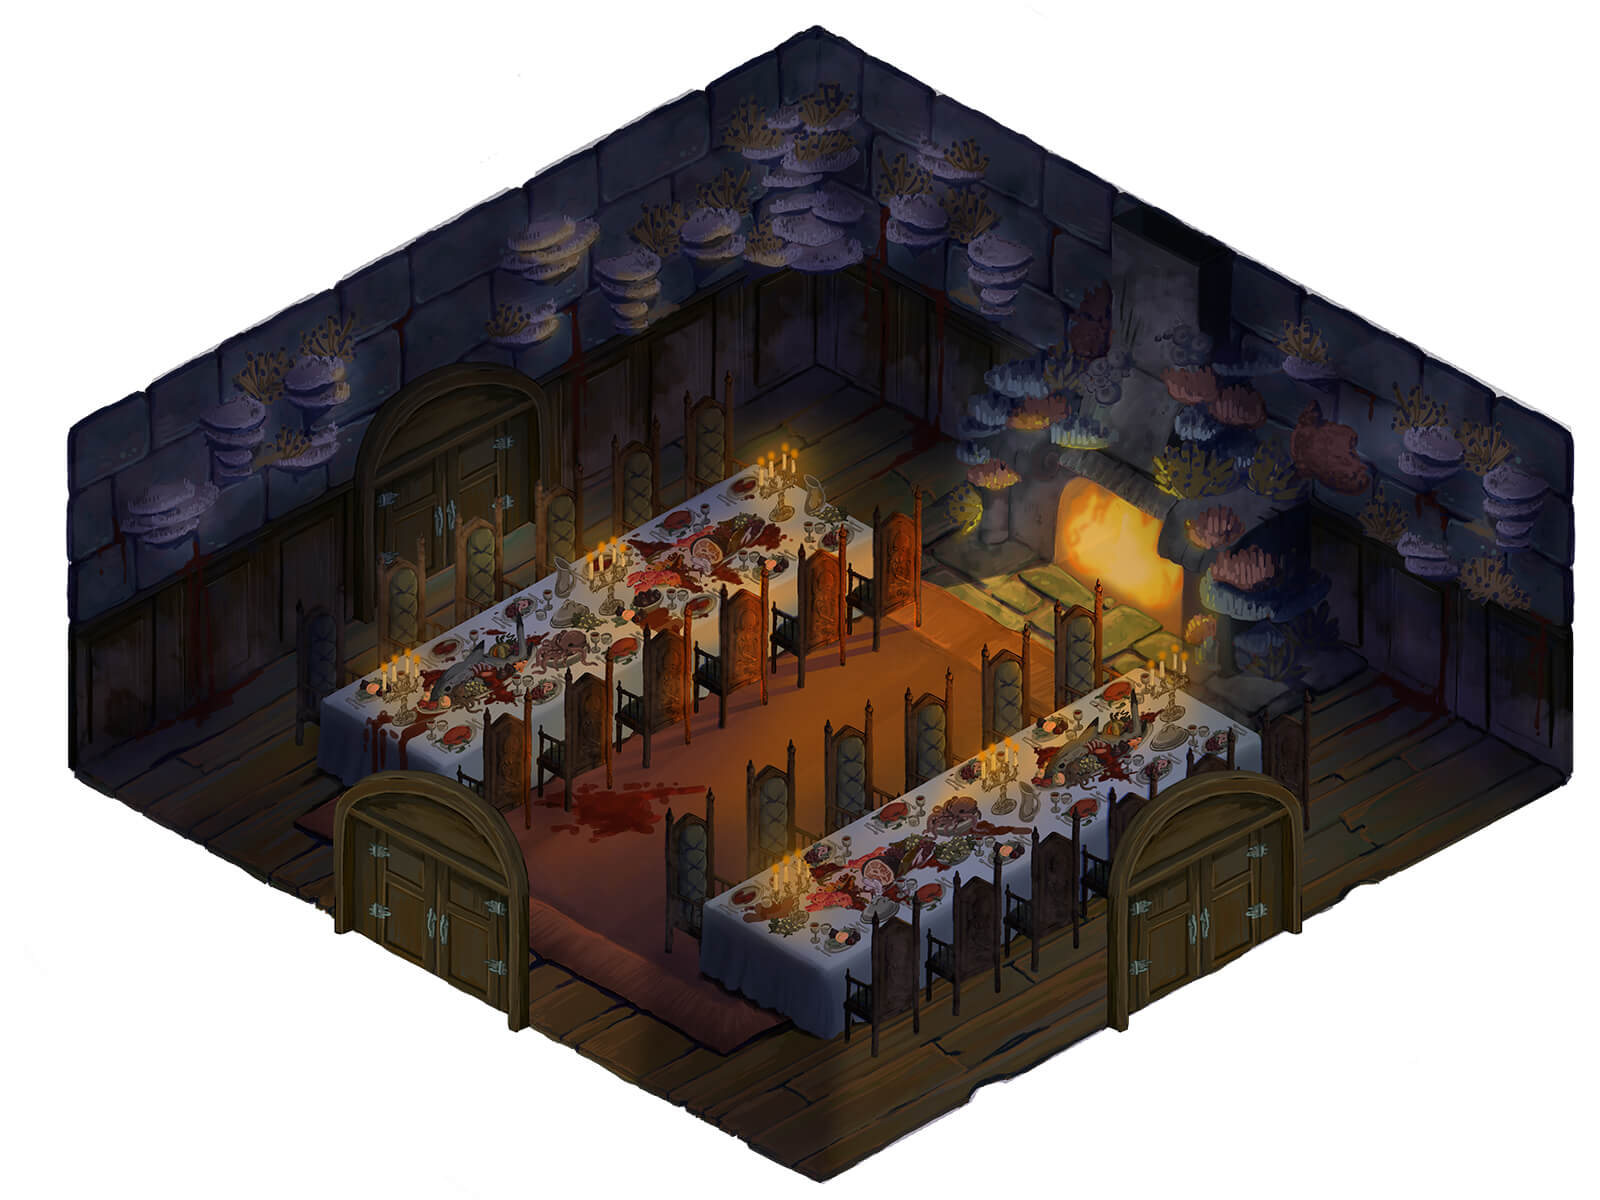 A top-down view of a dungeon with two tables laid with a feast